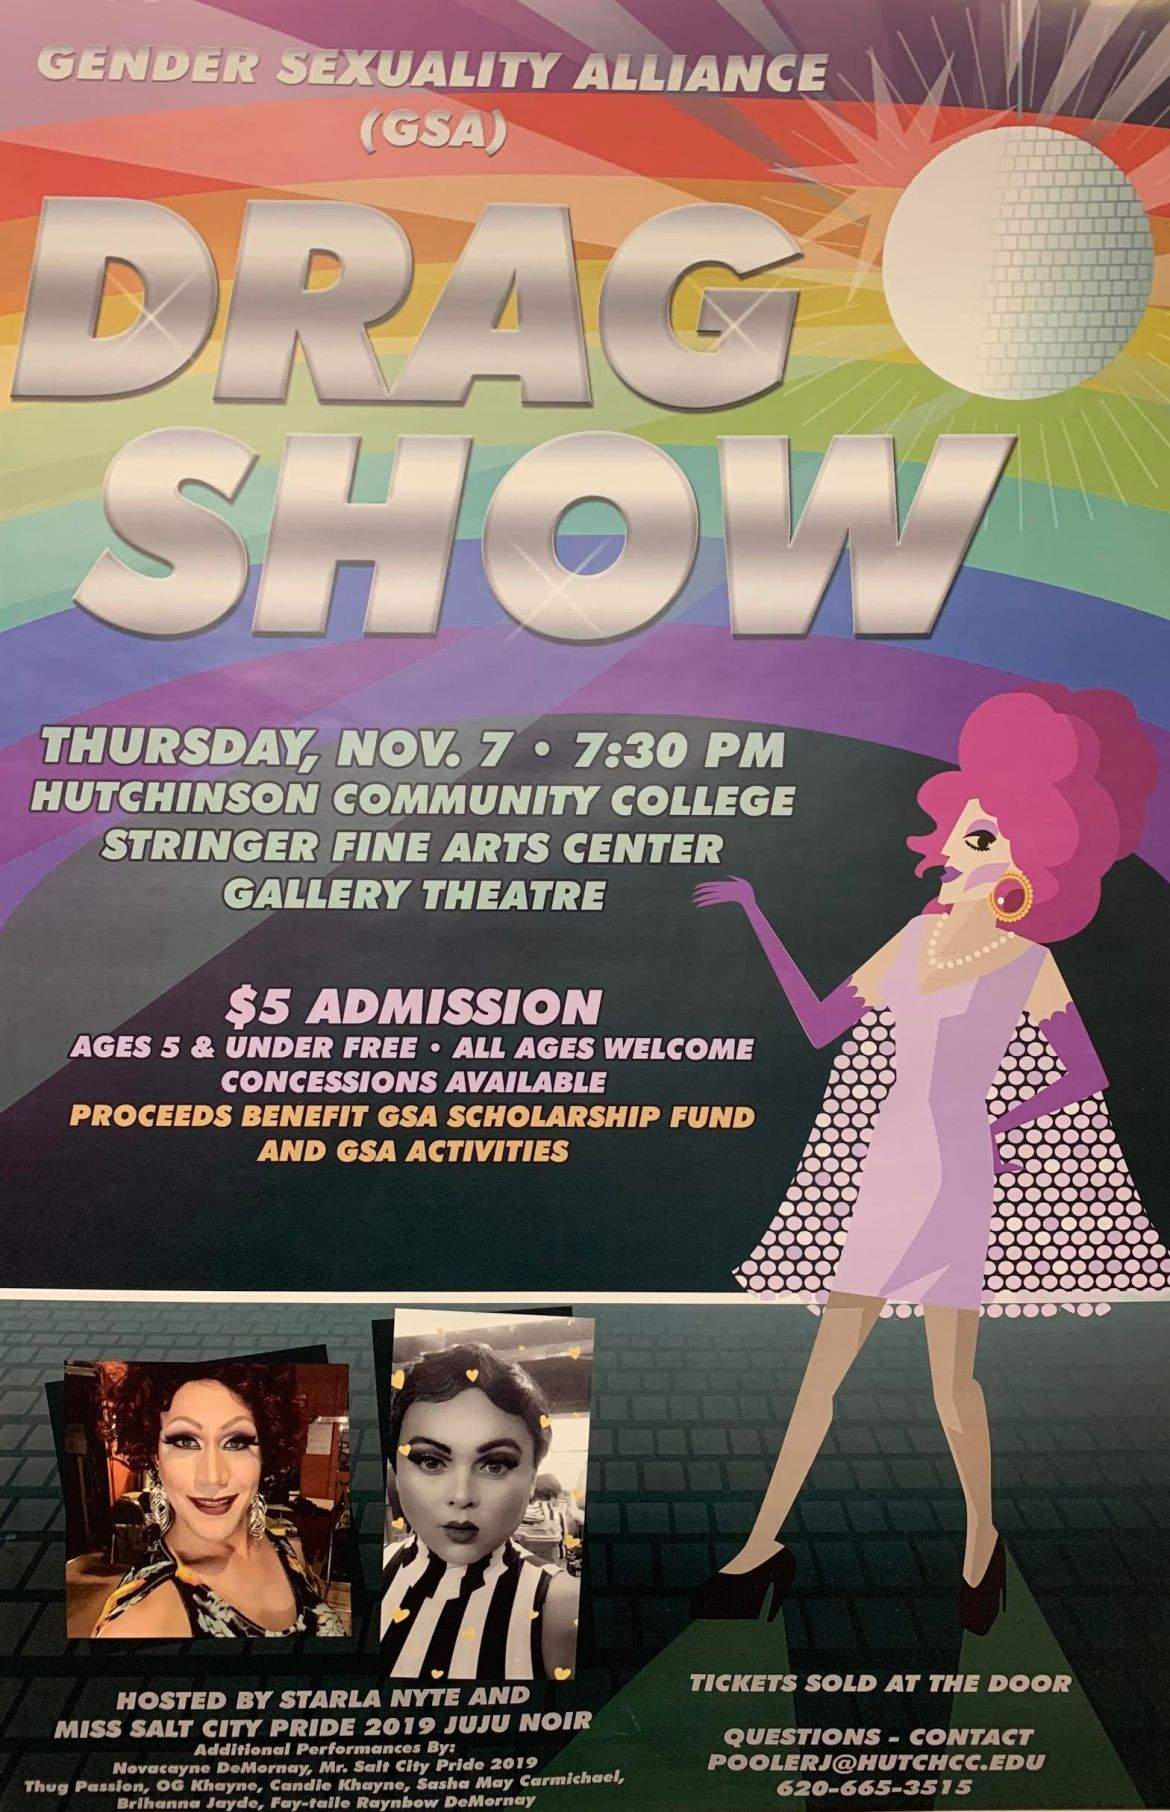 Drag show coming to HutchCC